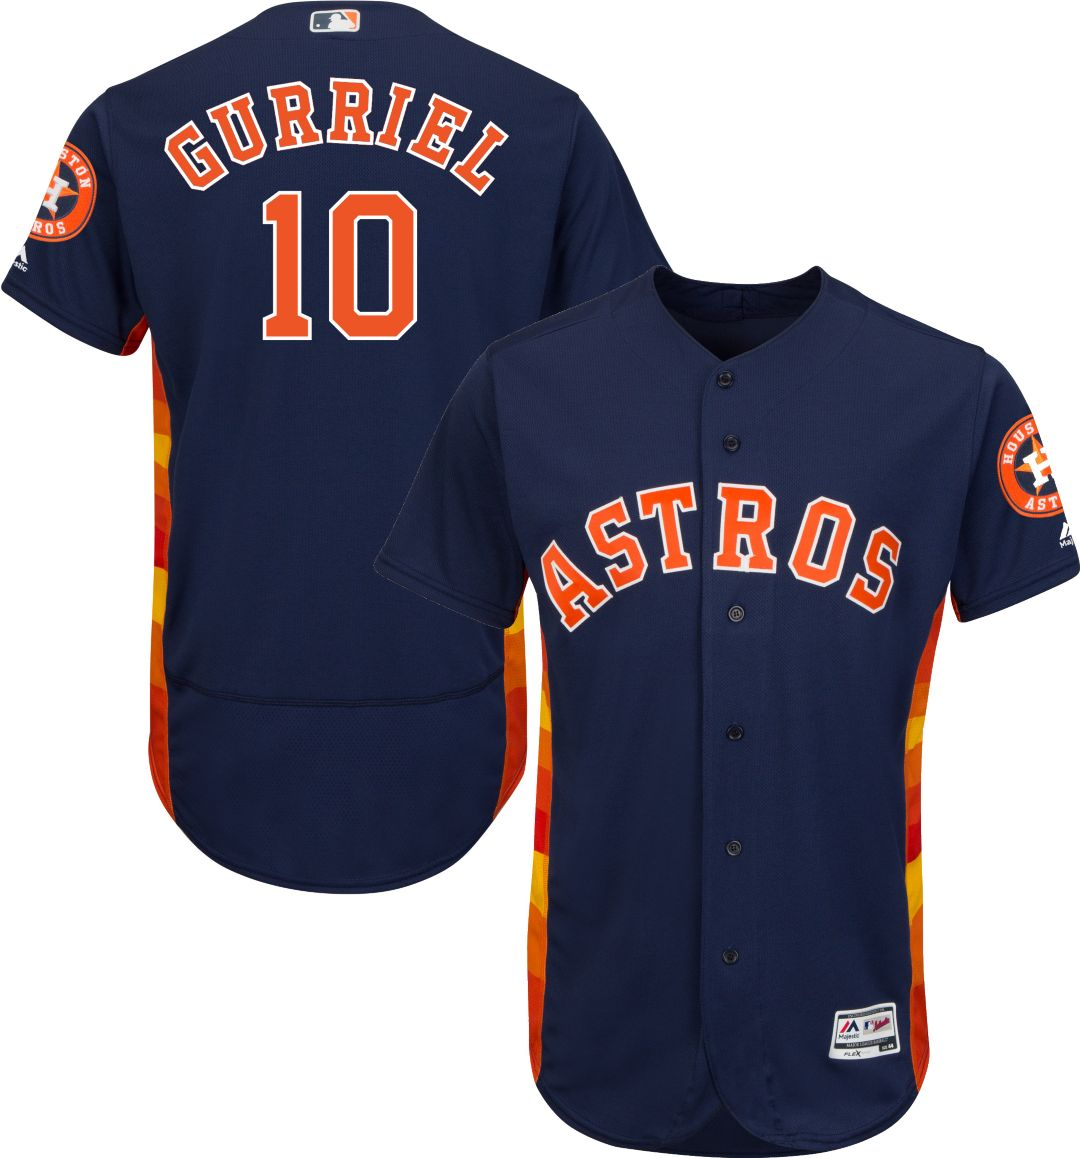 new product c3cb0 ebd75 Majestic Men's Authentic Houston Astros Yuli Gurriel #10 Flex Base  Alternate Navy On-Field Jersey